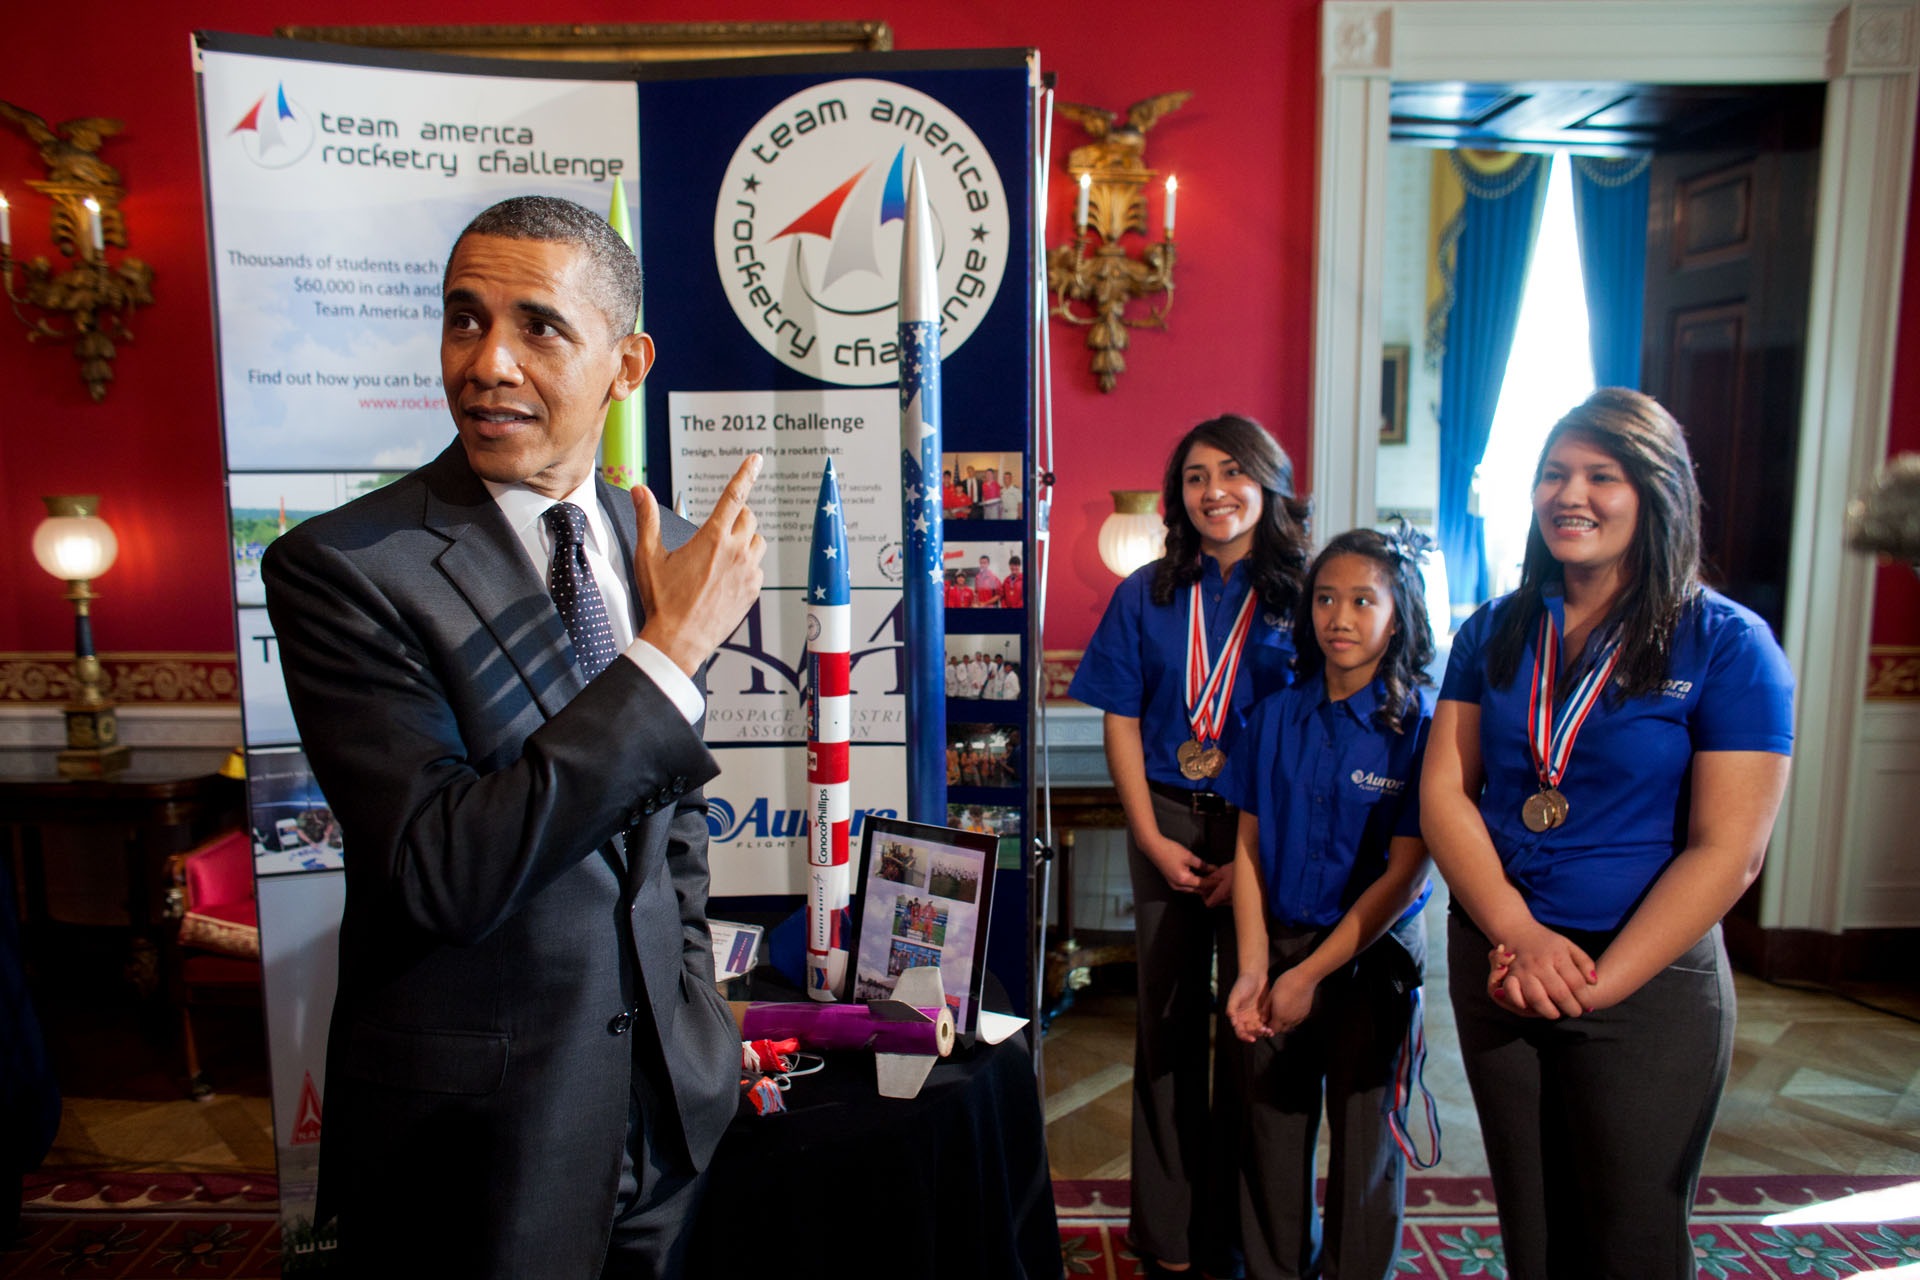 President Barack Obama hosts the second White House Science Fair celebrating the student winners of a broad range of science, technology, engineering and math (STEM) competitions from across the country. The President views exhibits of student work, ranging from breakthrough research to new inventions, in the Red Room of the White House, Feb. 7, 2012. (Official White House Photo by Lawrence Jackson) Young Women Rocketing to Nationals.  Janet Nieto and Ana Karen of Presidio, Texas were members of the Presidio High School Rocketry Team that competed as a National Finalist in the Team America Rocketry Challenge (TARC) in 2009, 2010, and 2011.  Gwynelle Condino, a 7th grade student at Lucy Franco Middle School, also of Presidio, Texas, is the leader of her TARC team this year.  All three girls have successfully competed in a number of rocketry challenges and have attended the NASA Student Launch Initiative Advanced Rocketry program.